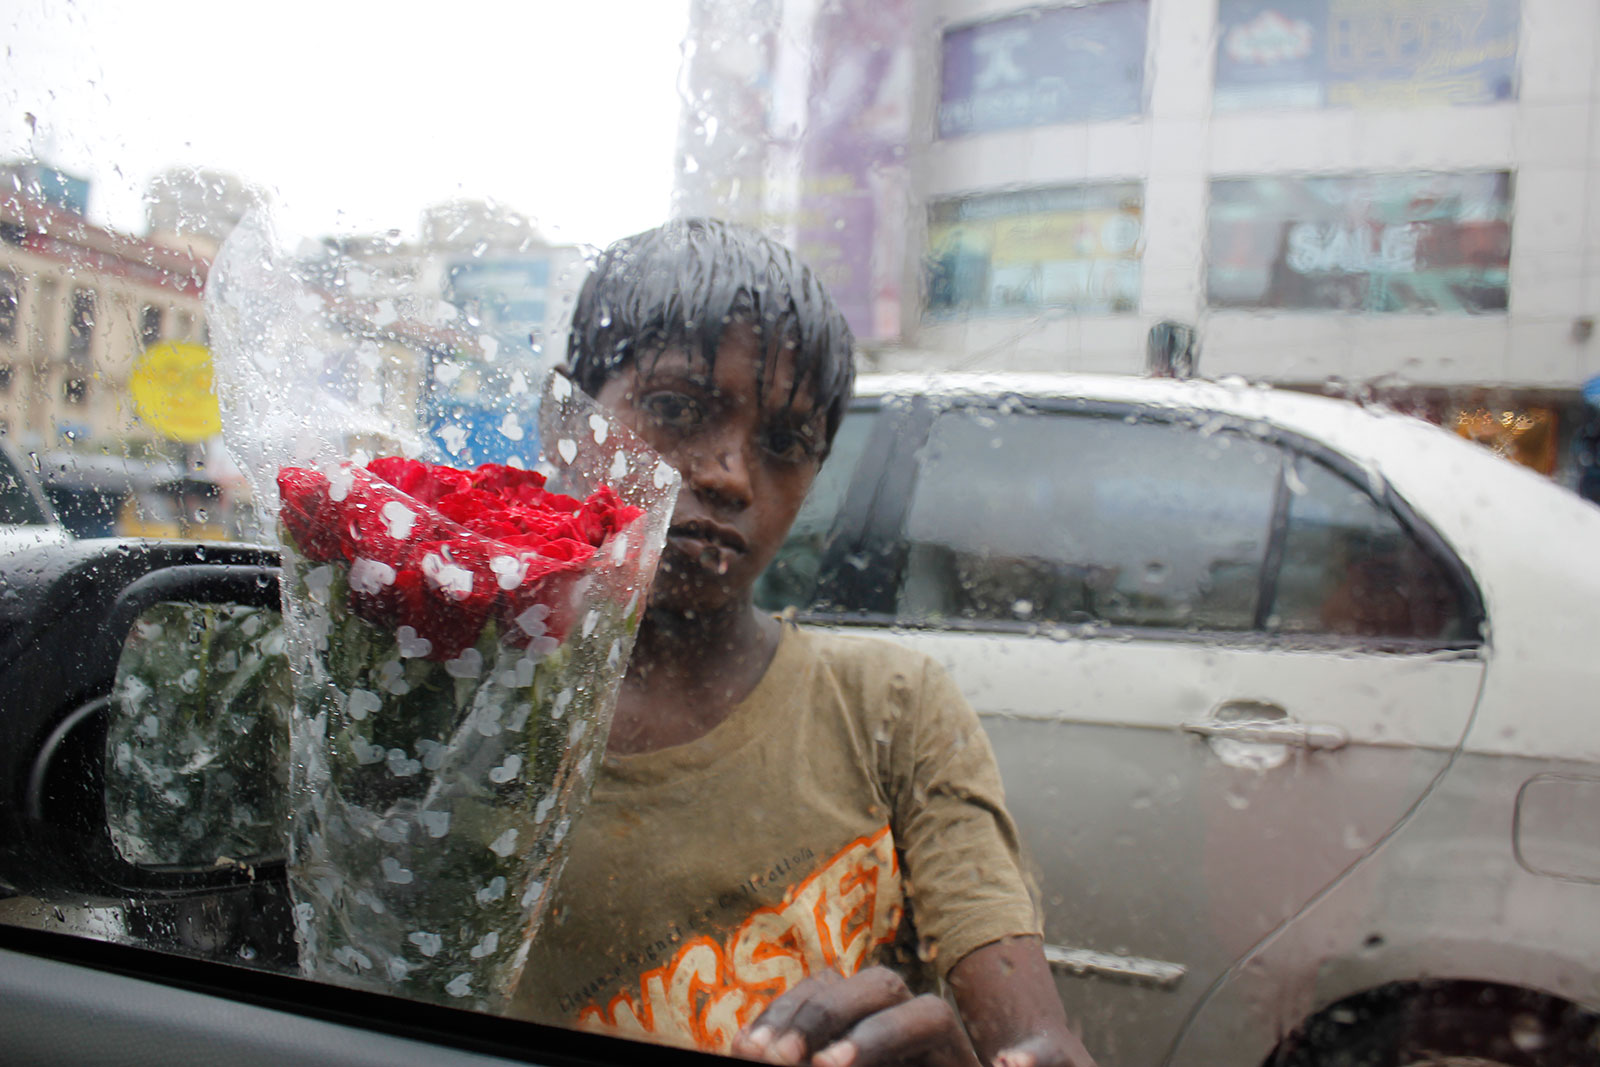 potrait shot from car of a boy selling frowers in the rain